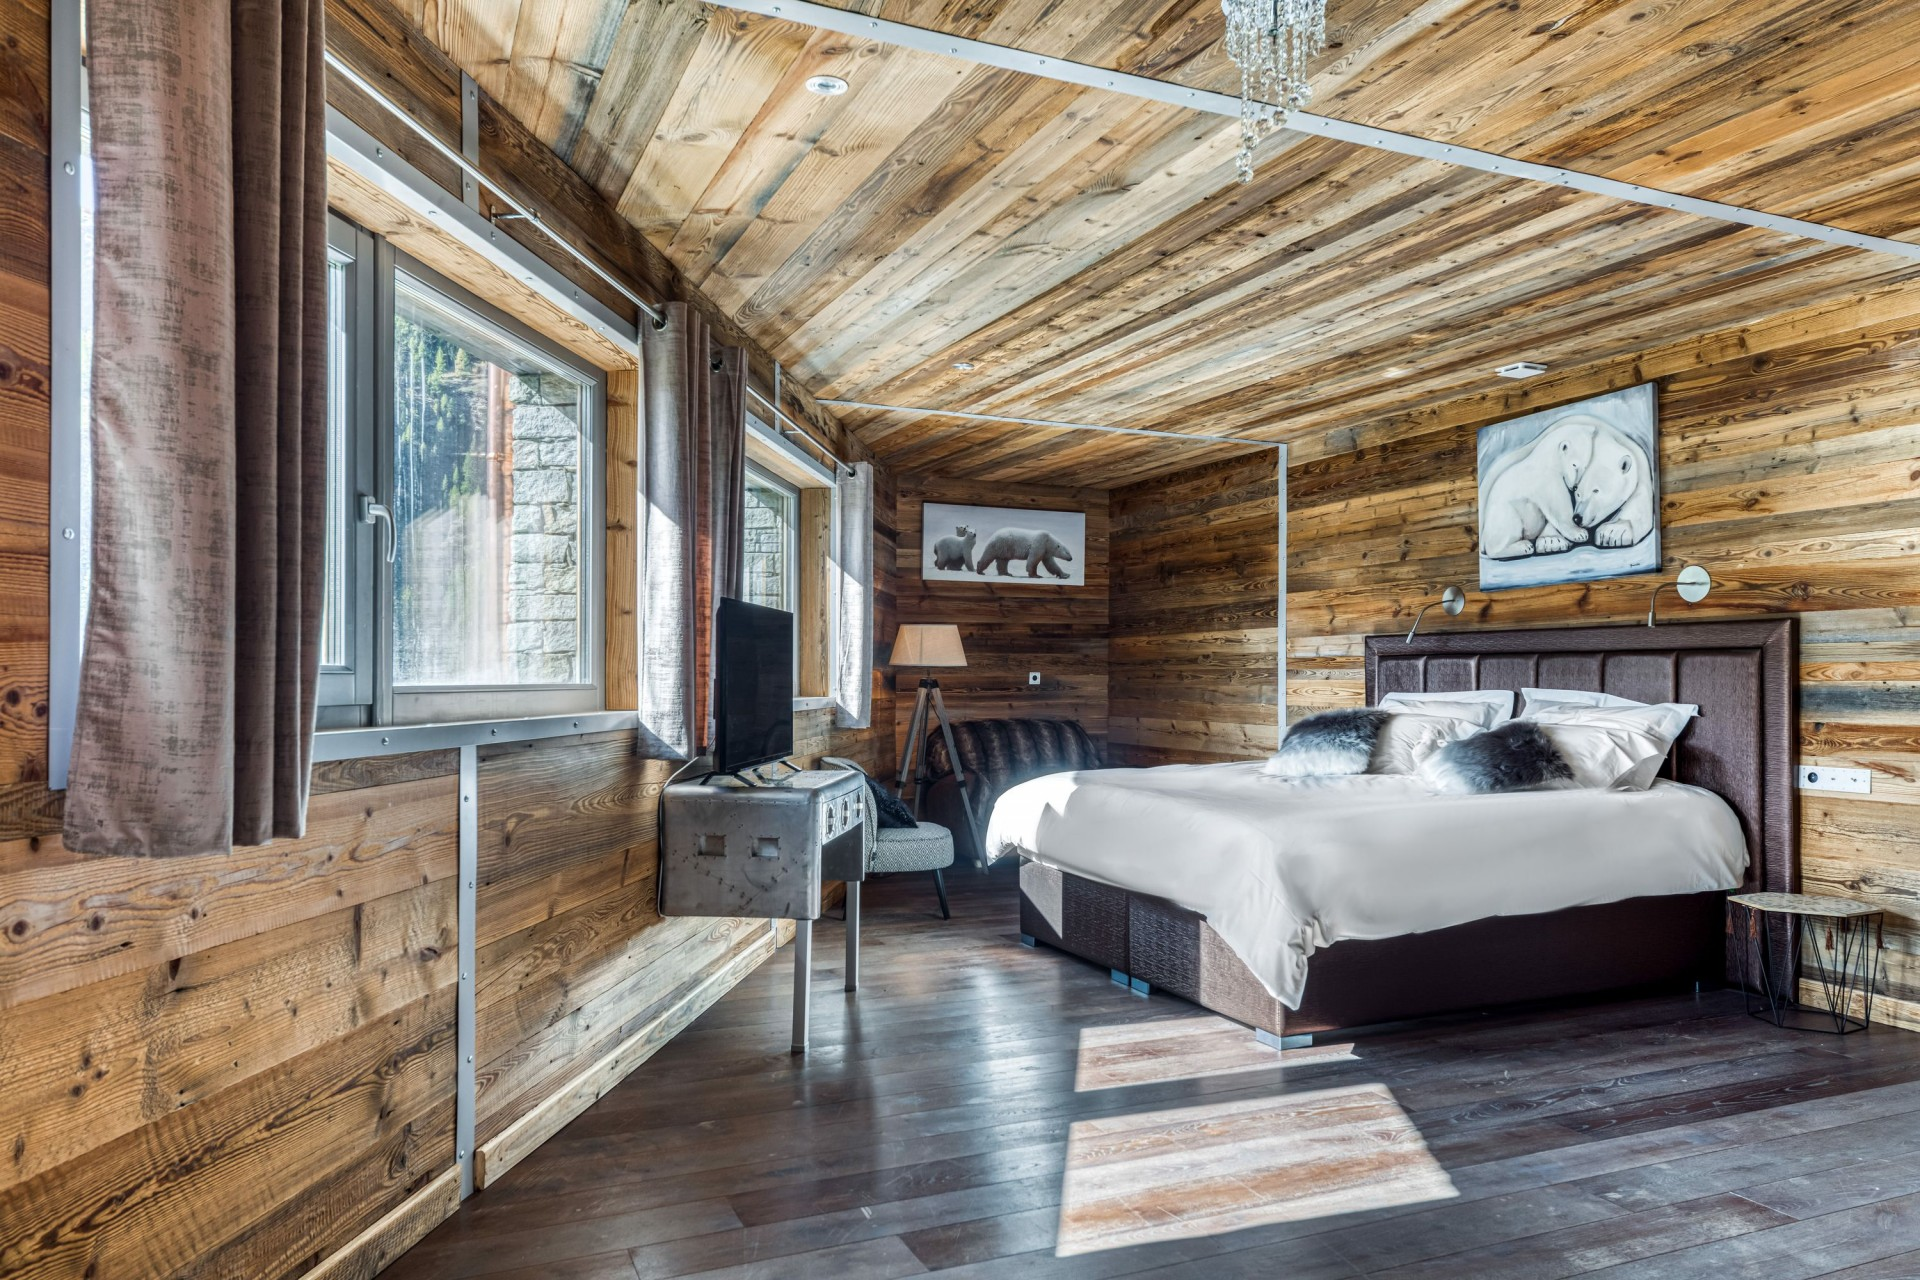 Tignes Location Chalet Luxe Turquoize Chambre5